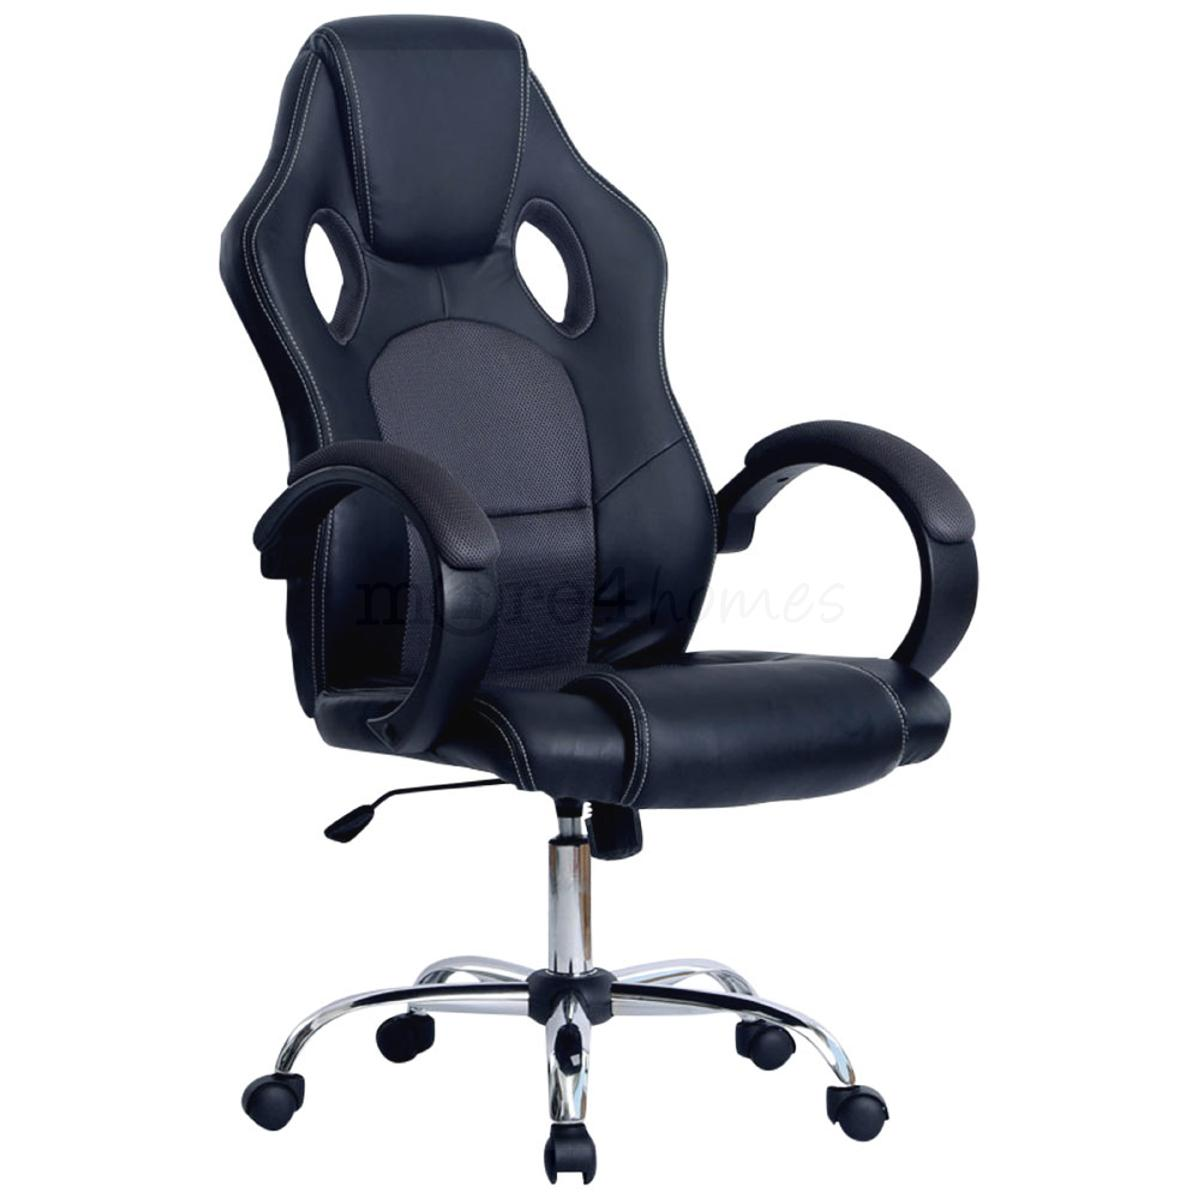 racing desk chair prix gray pic